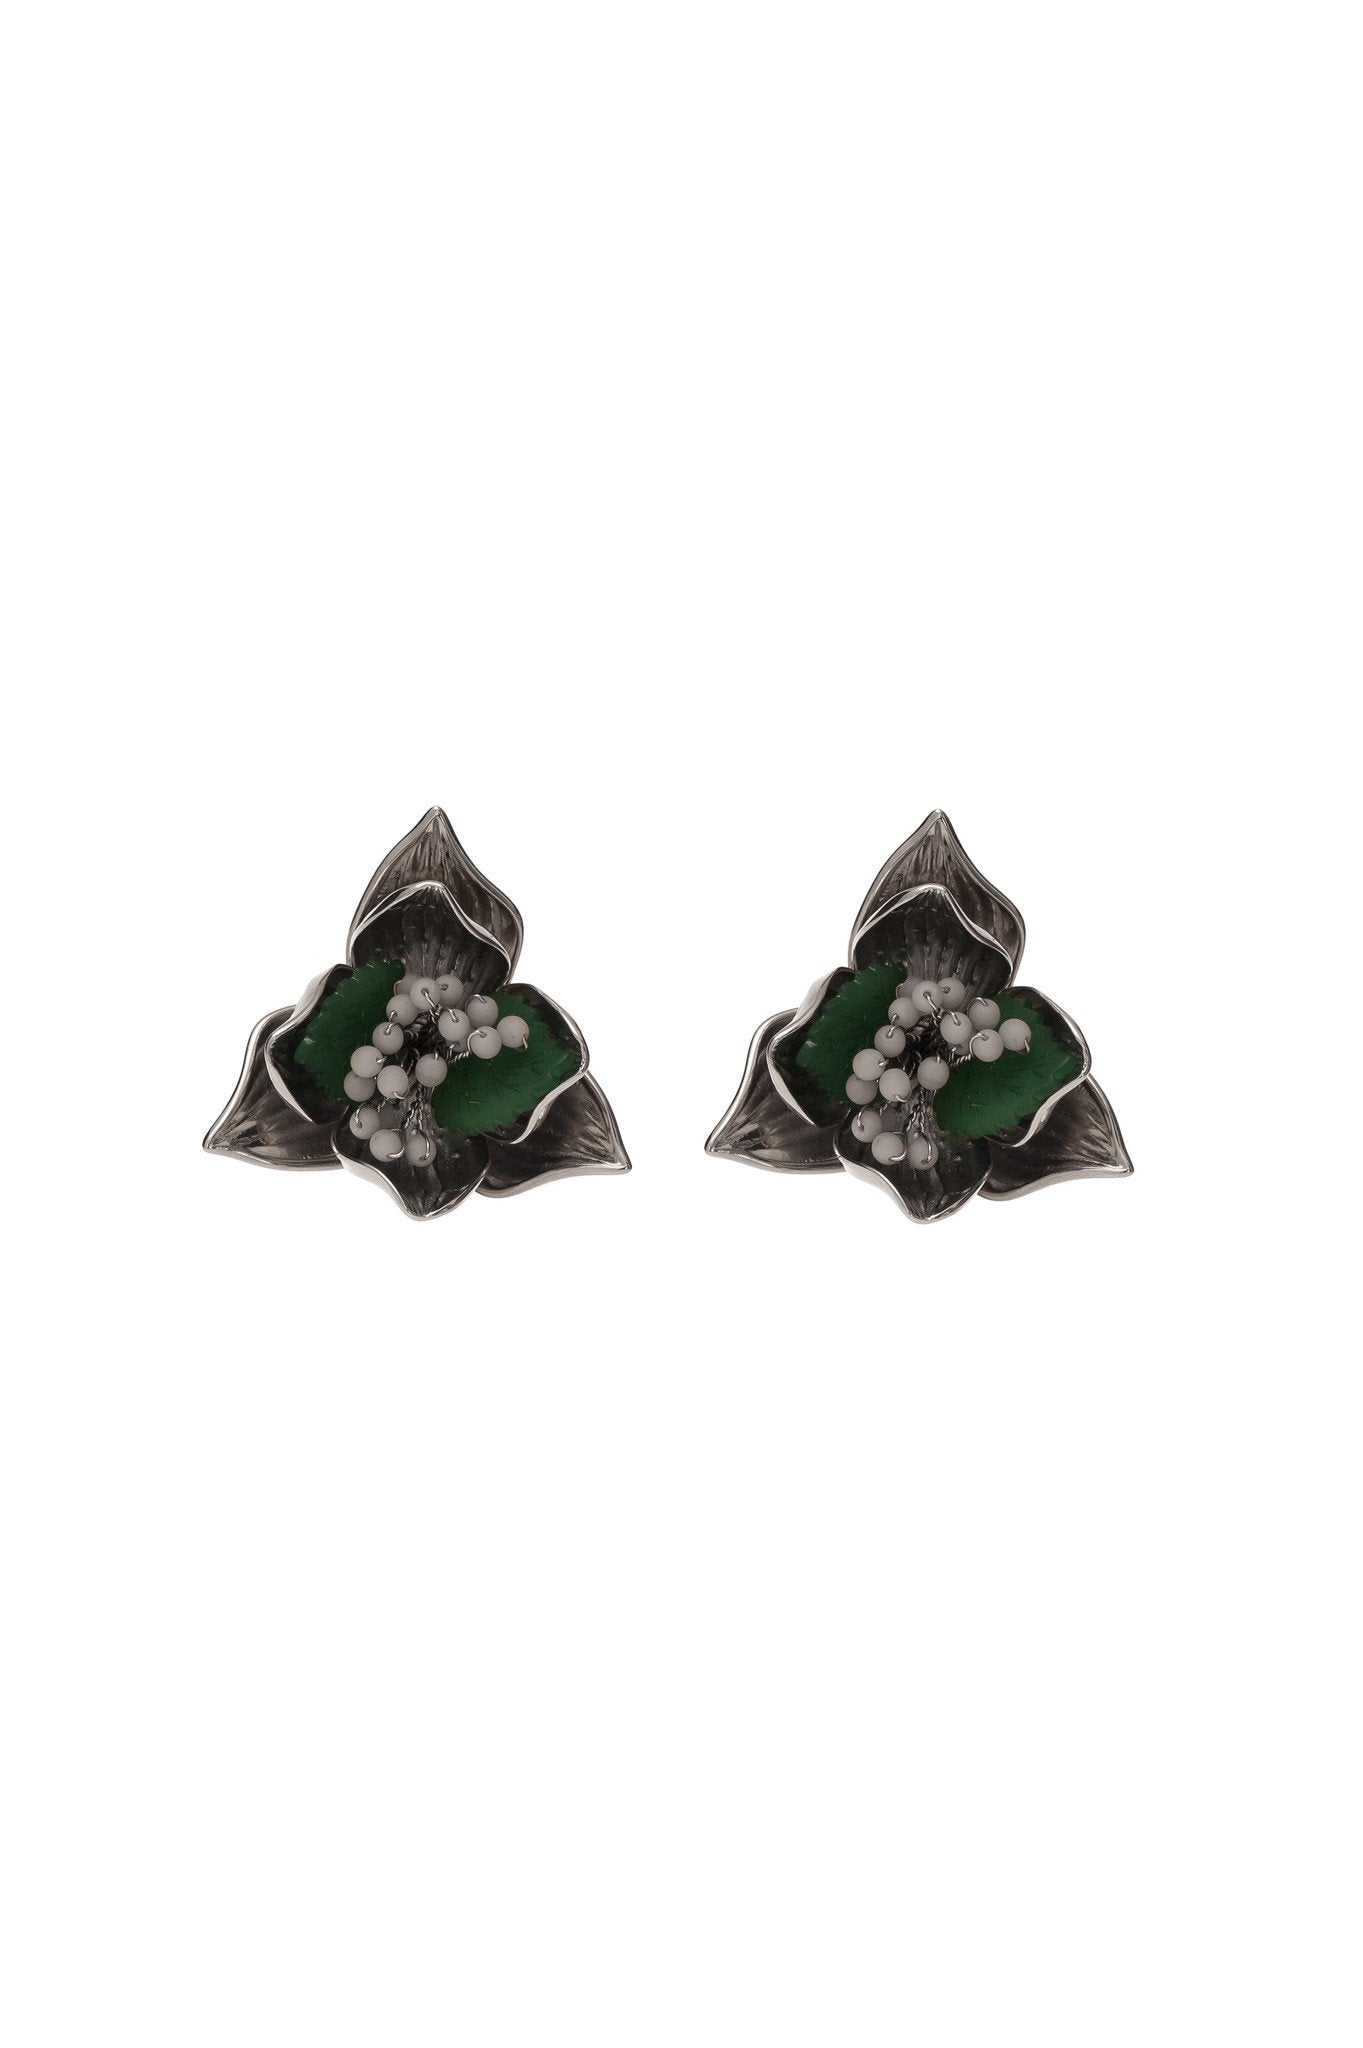 MEDINILA EARRINGS